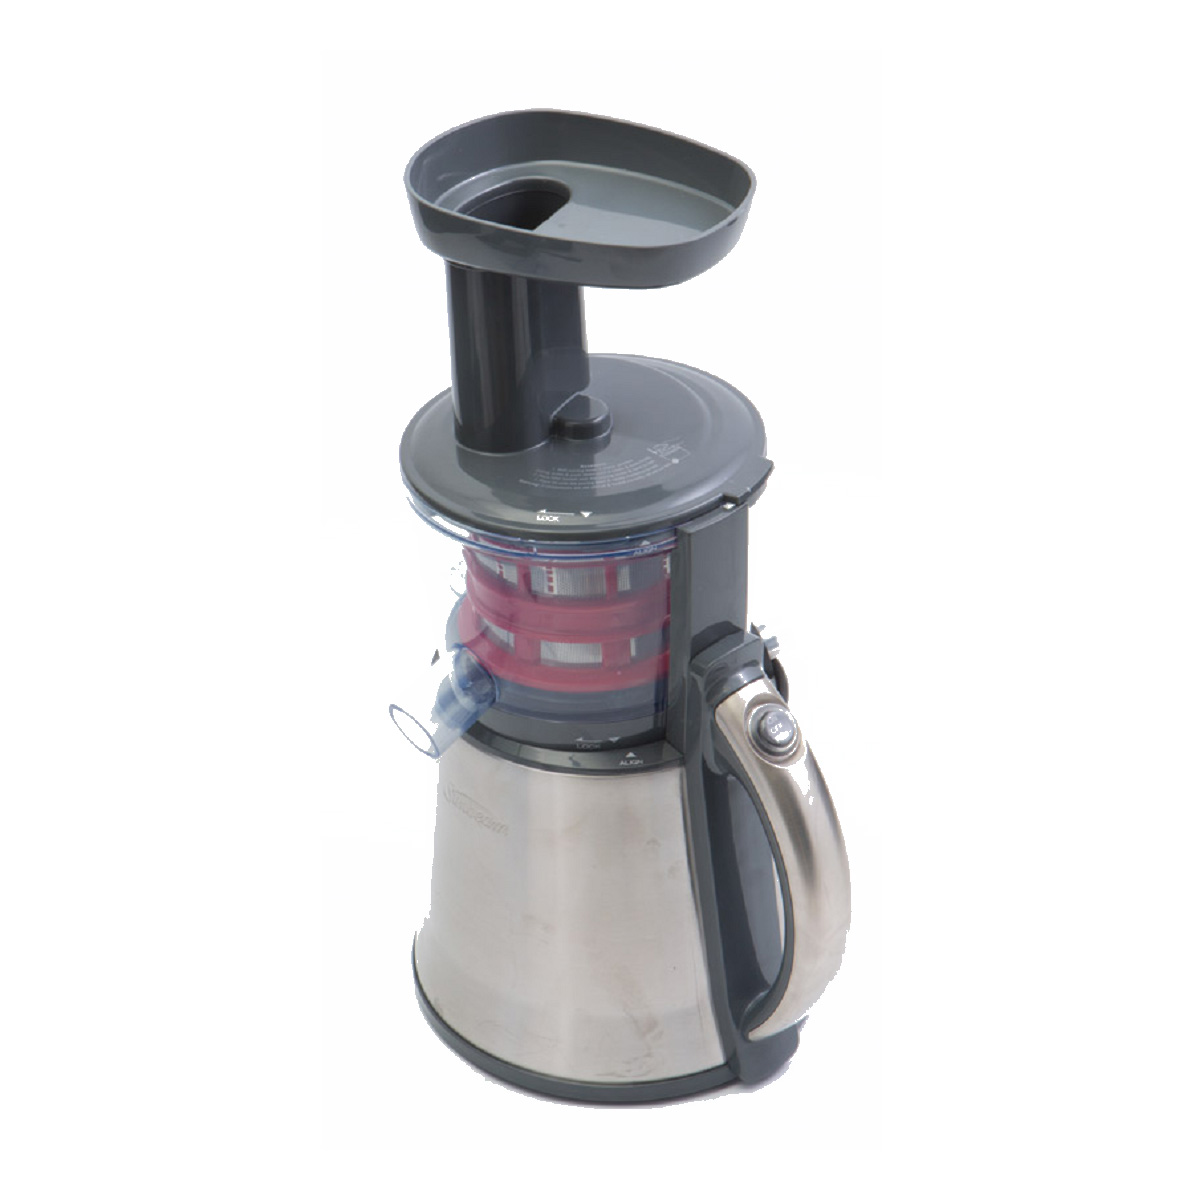 Slow Juicer Je9000 : Sunbeam JE9000 Slow Juicer Home Clearance